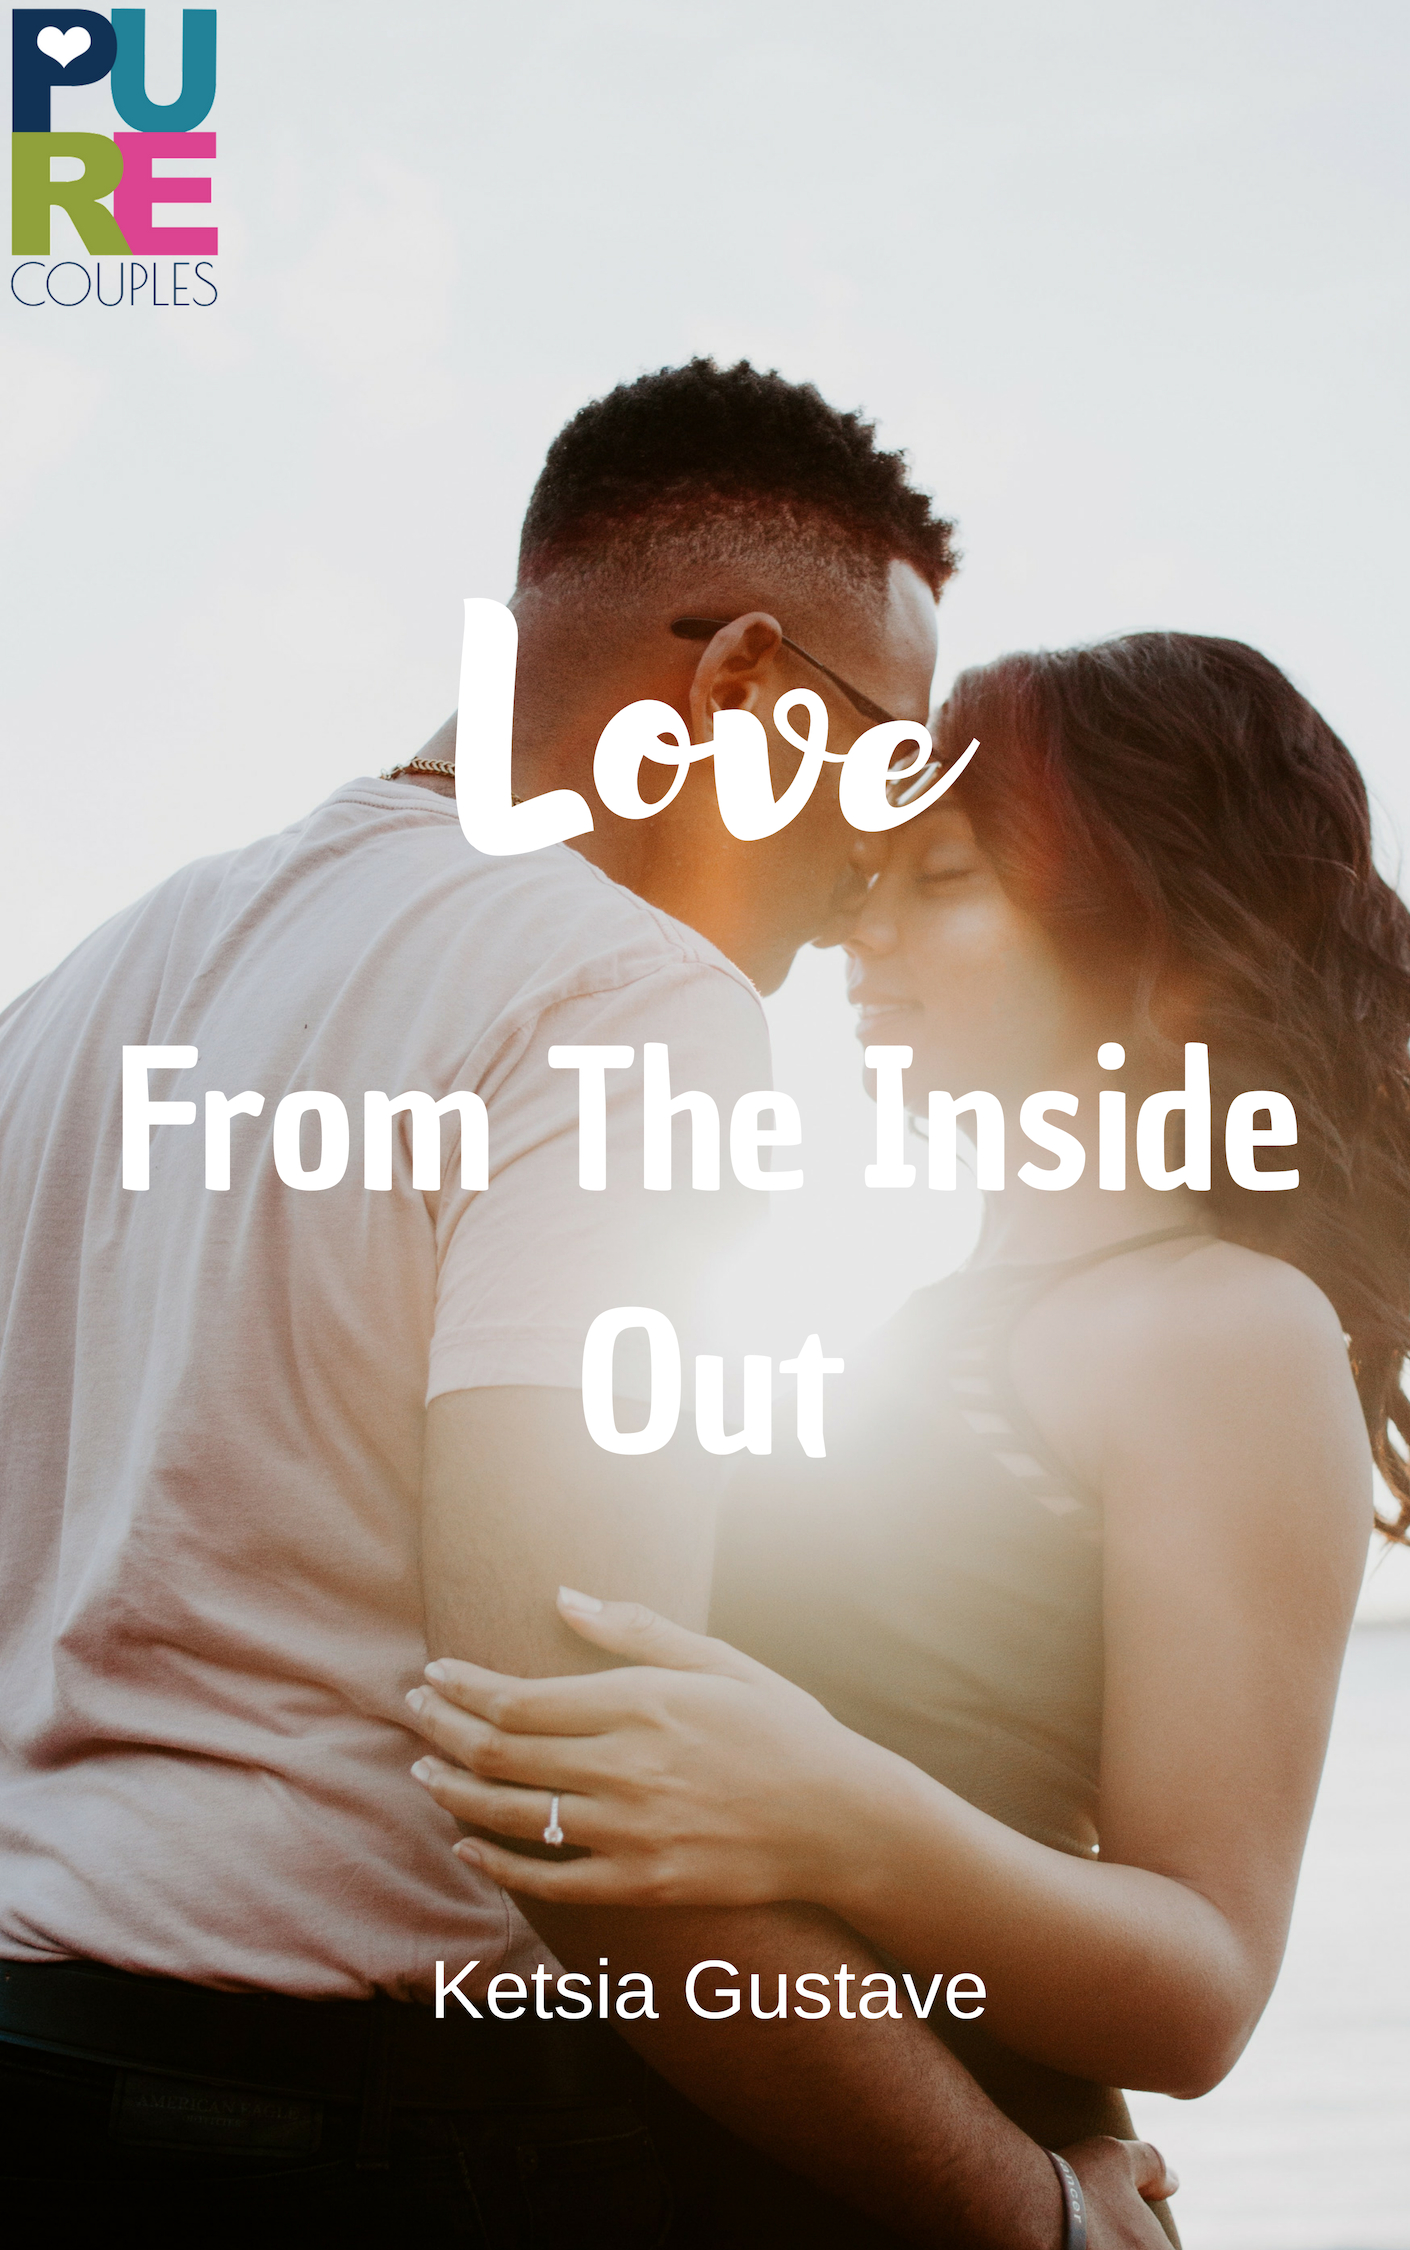 Get your one-stop Marriage Prep Bundle here!